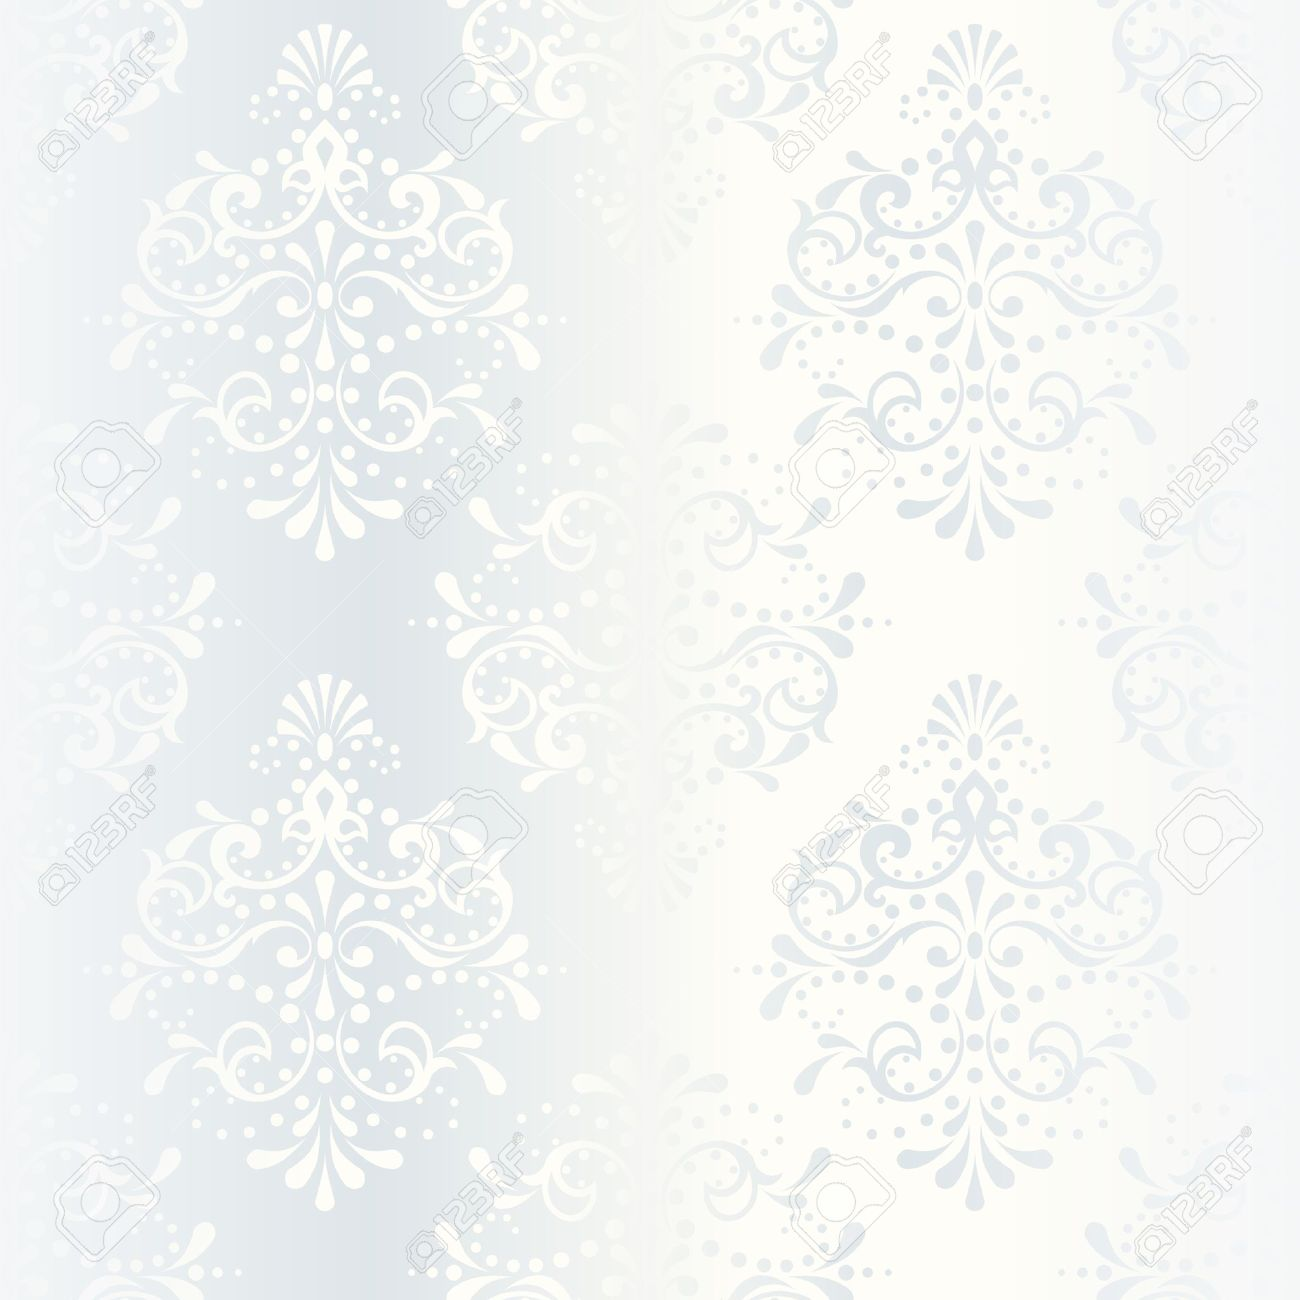 vector elegant white seamless pattern prefect for wedding designs the tiles can be combined seamlessly graphics are grouped and in several layers for